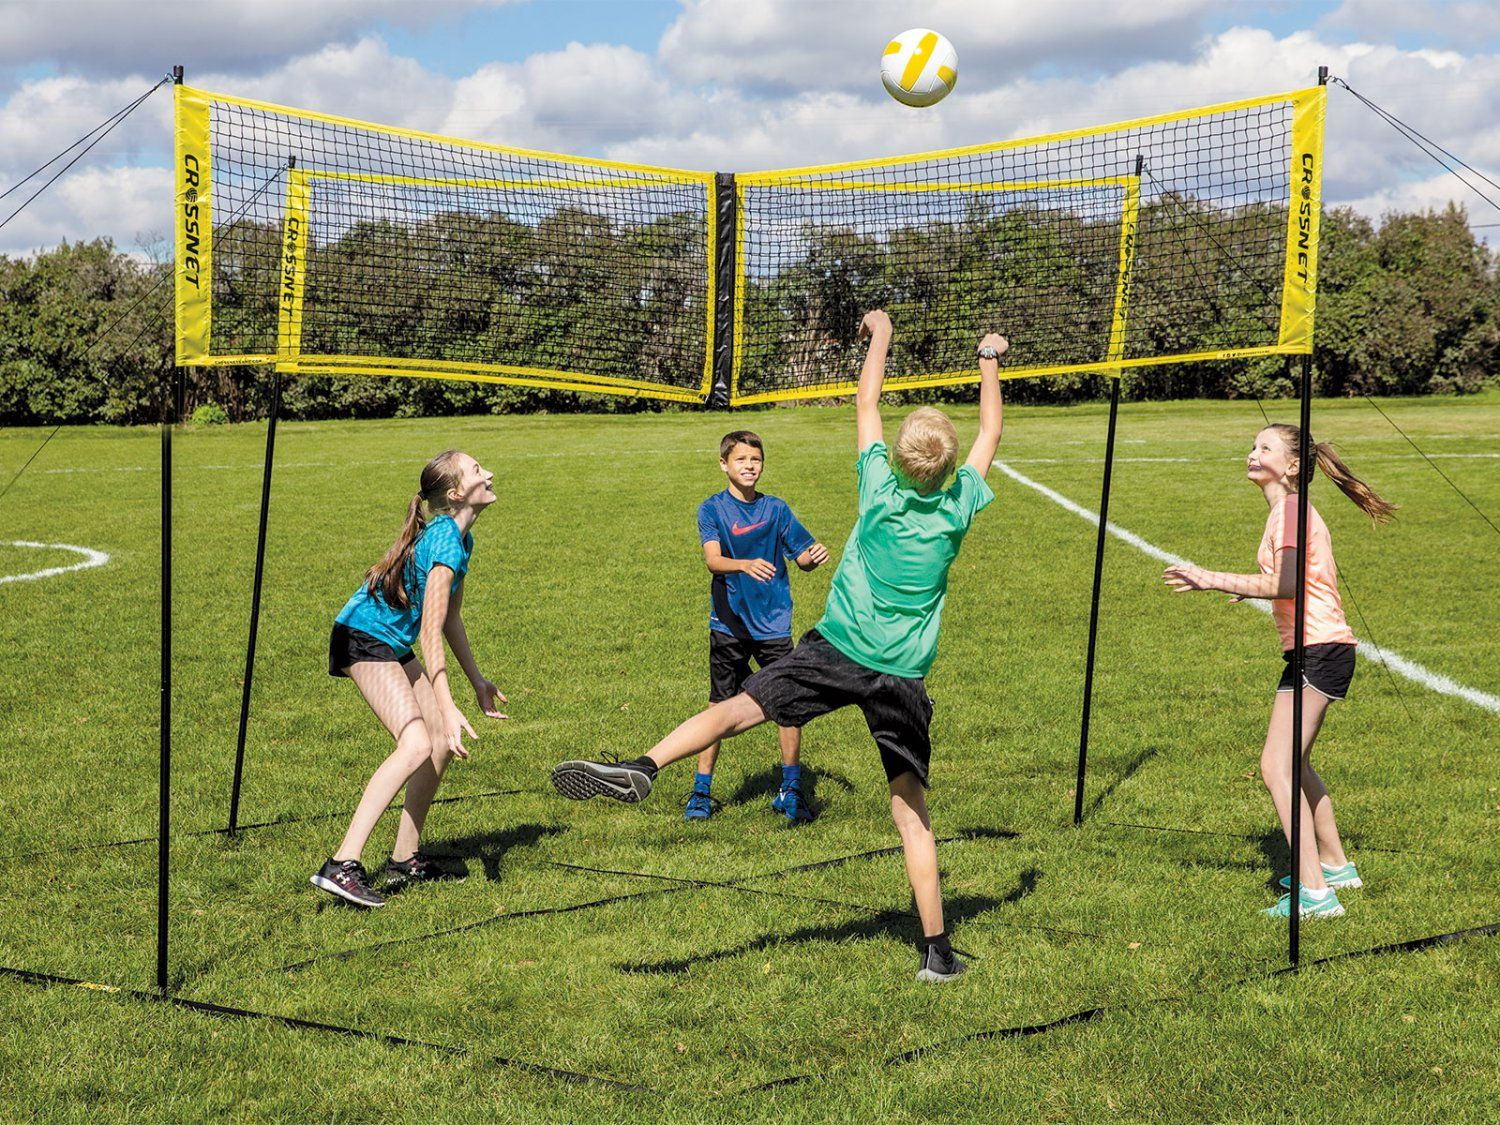 Crossnet The Game Your Pe Class Needs Volleyball Net Volleyball Games Volleyball Skills